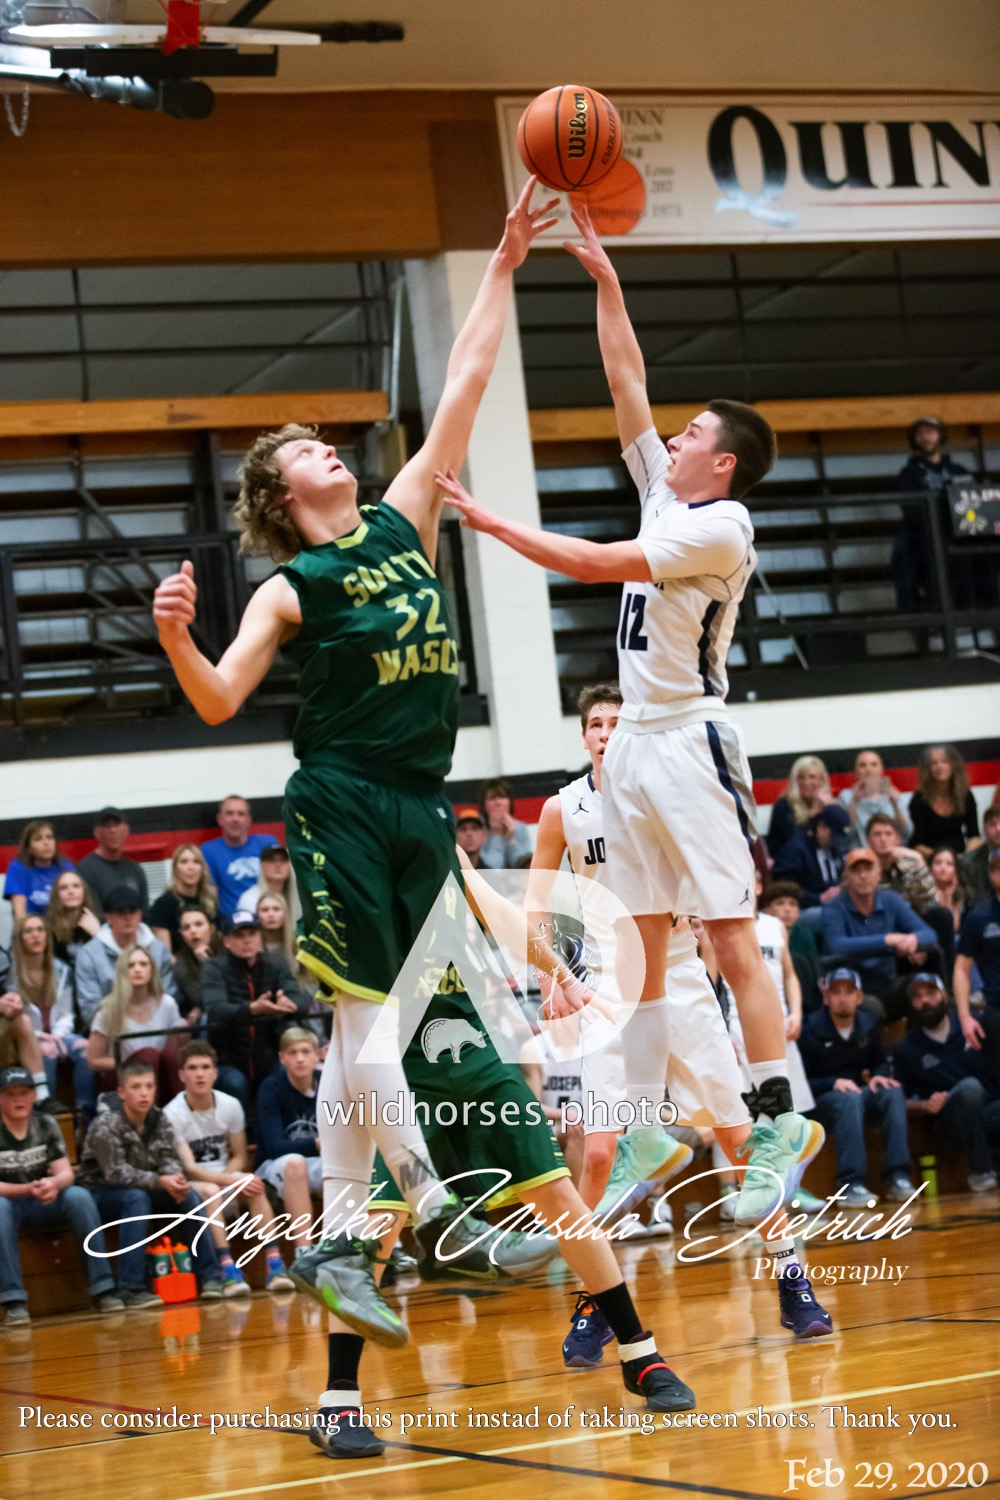 Joseph Eagles Boys Secure Seat in 2020 1A High School Basketball State Championship eliminating South Wasco County